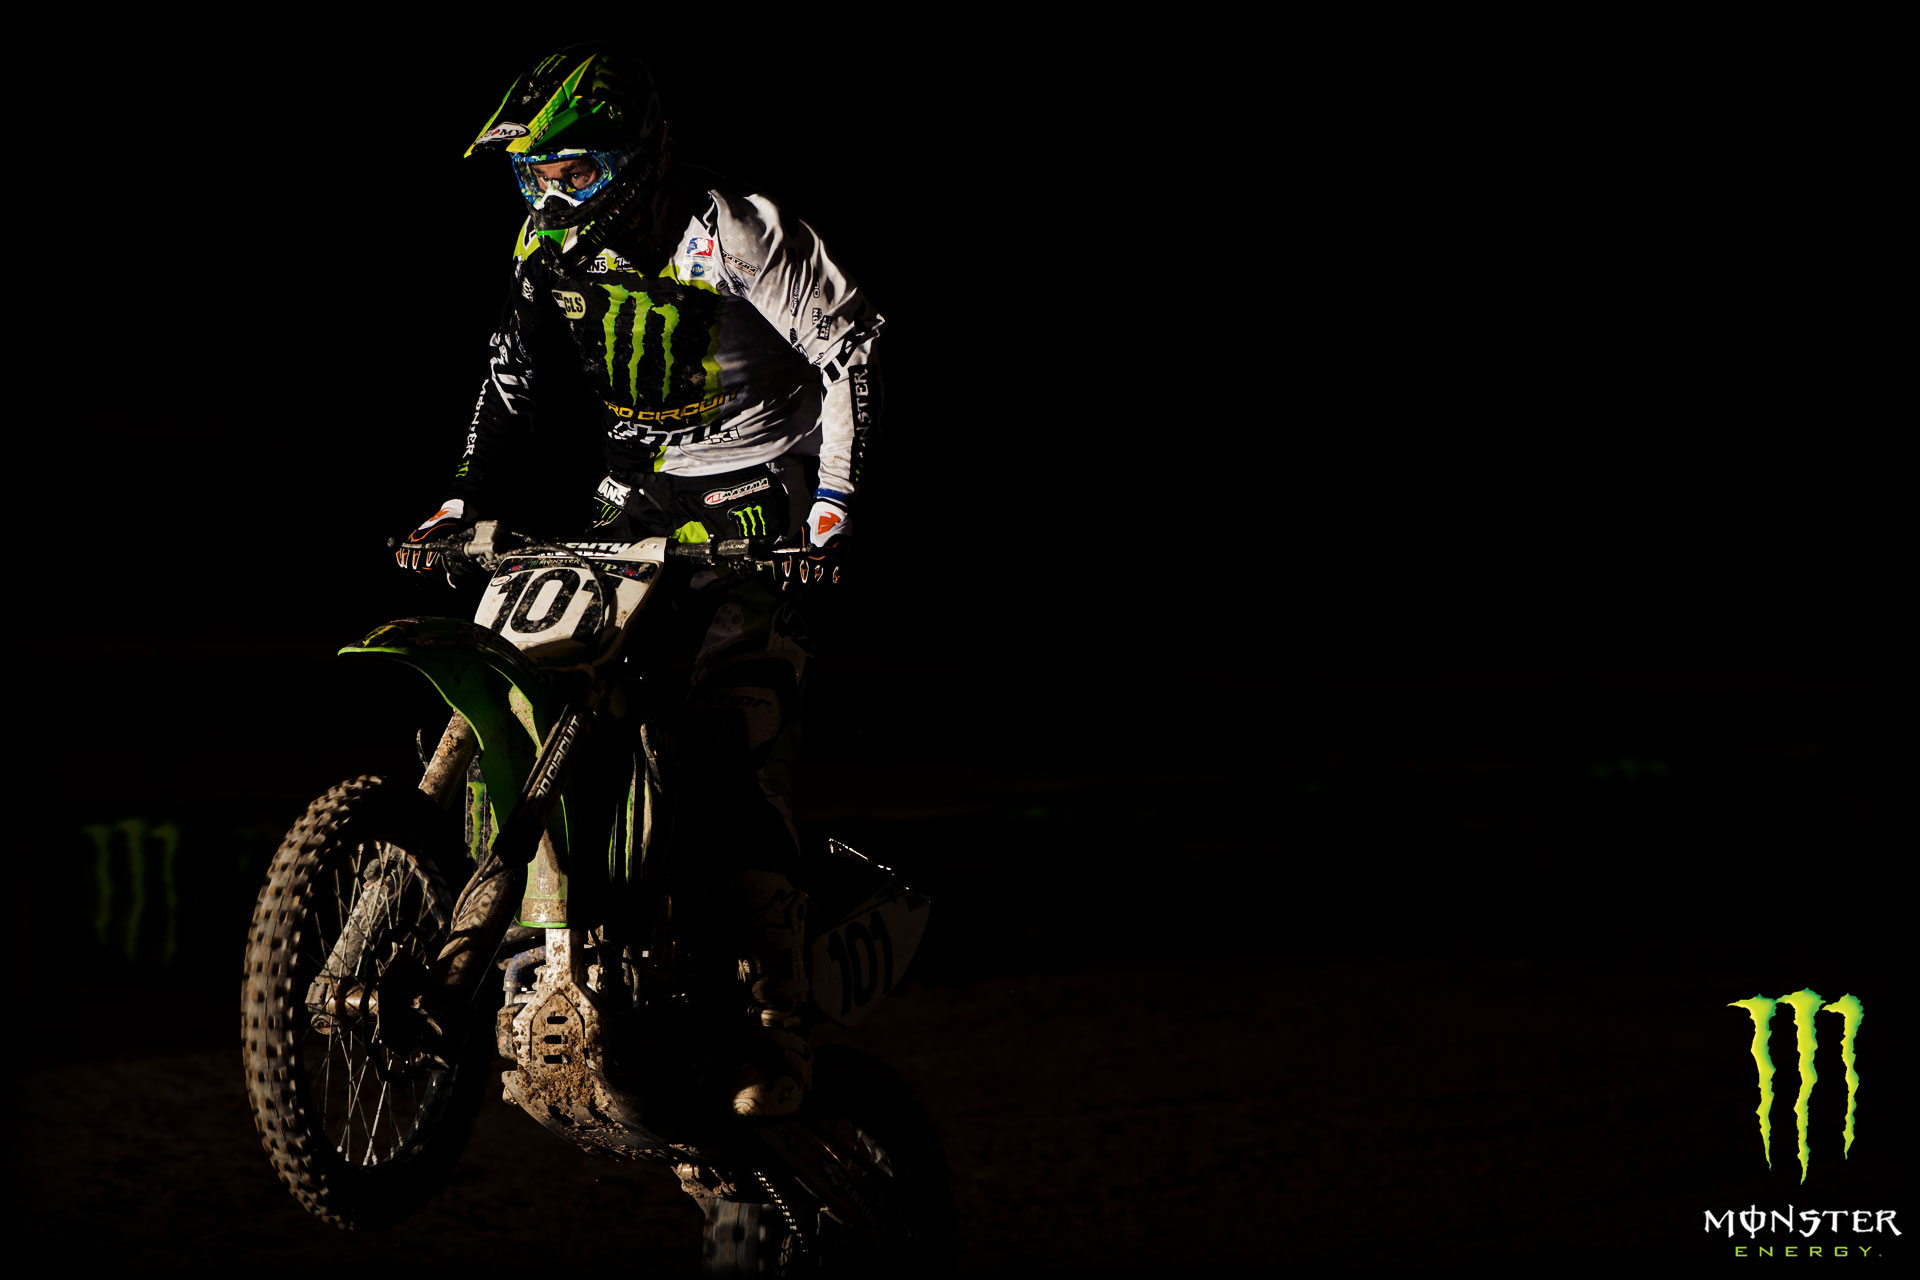 Monster Energy Motocross 1920x1280